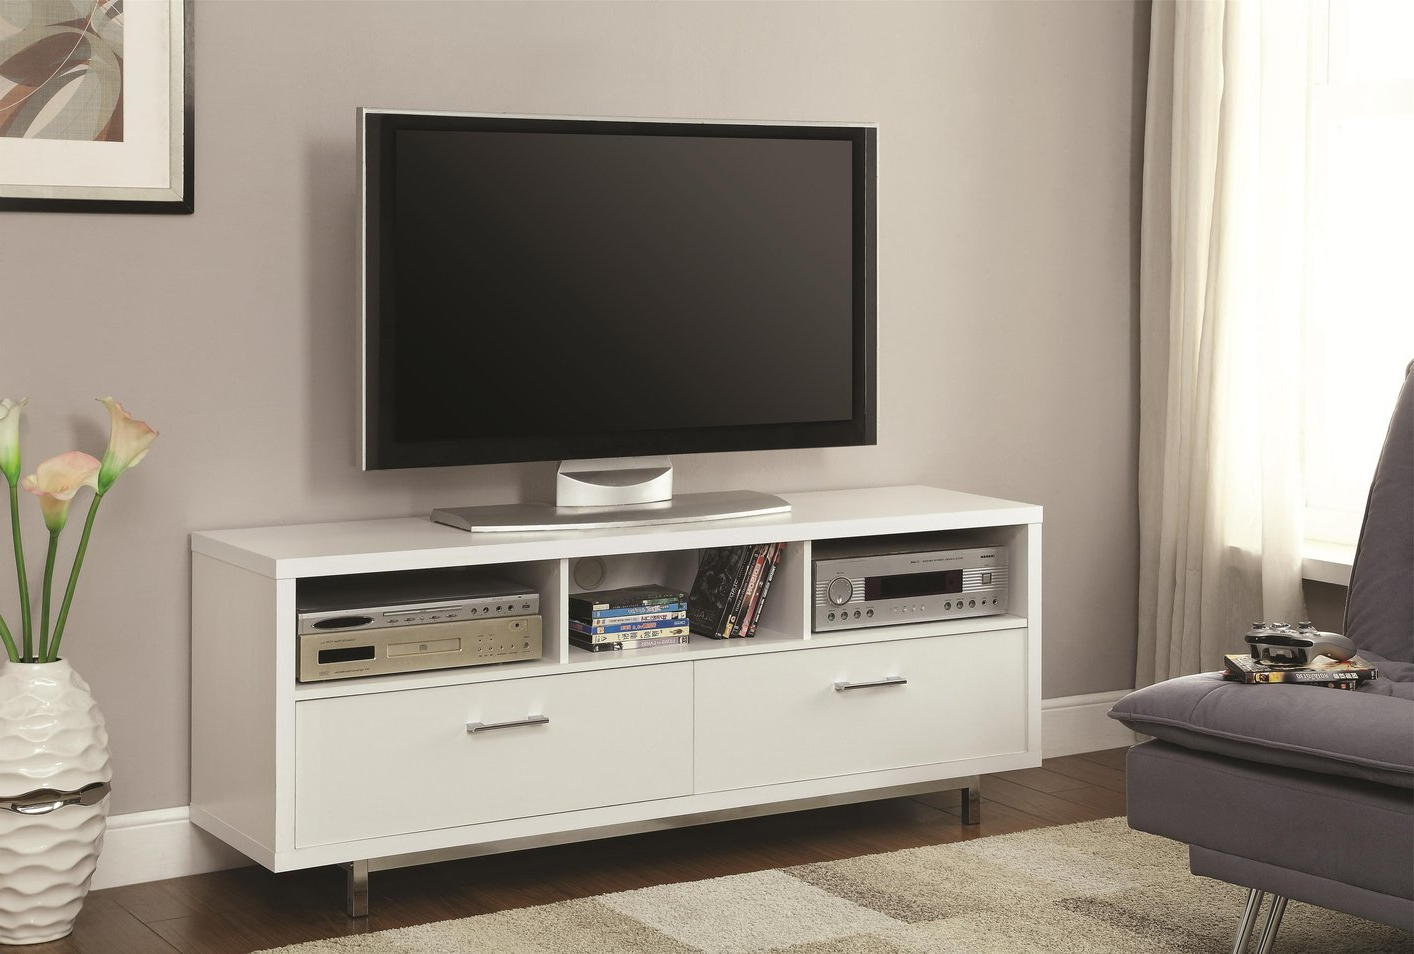 Widely Used White Wood Tv Stands With White Wood Tv Stand – Steal A Sofa Furniture Outlet Los Angeles Ca (View 9 of 20)